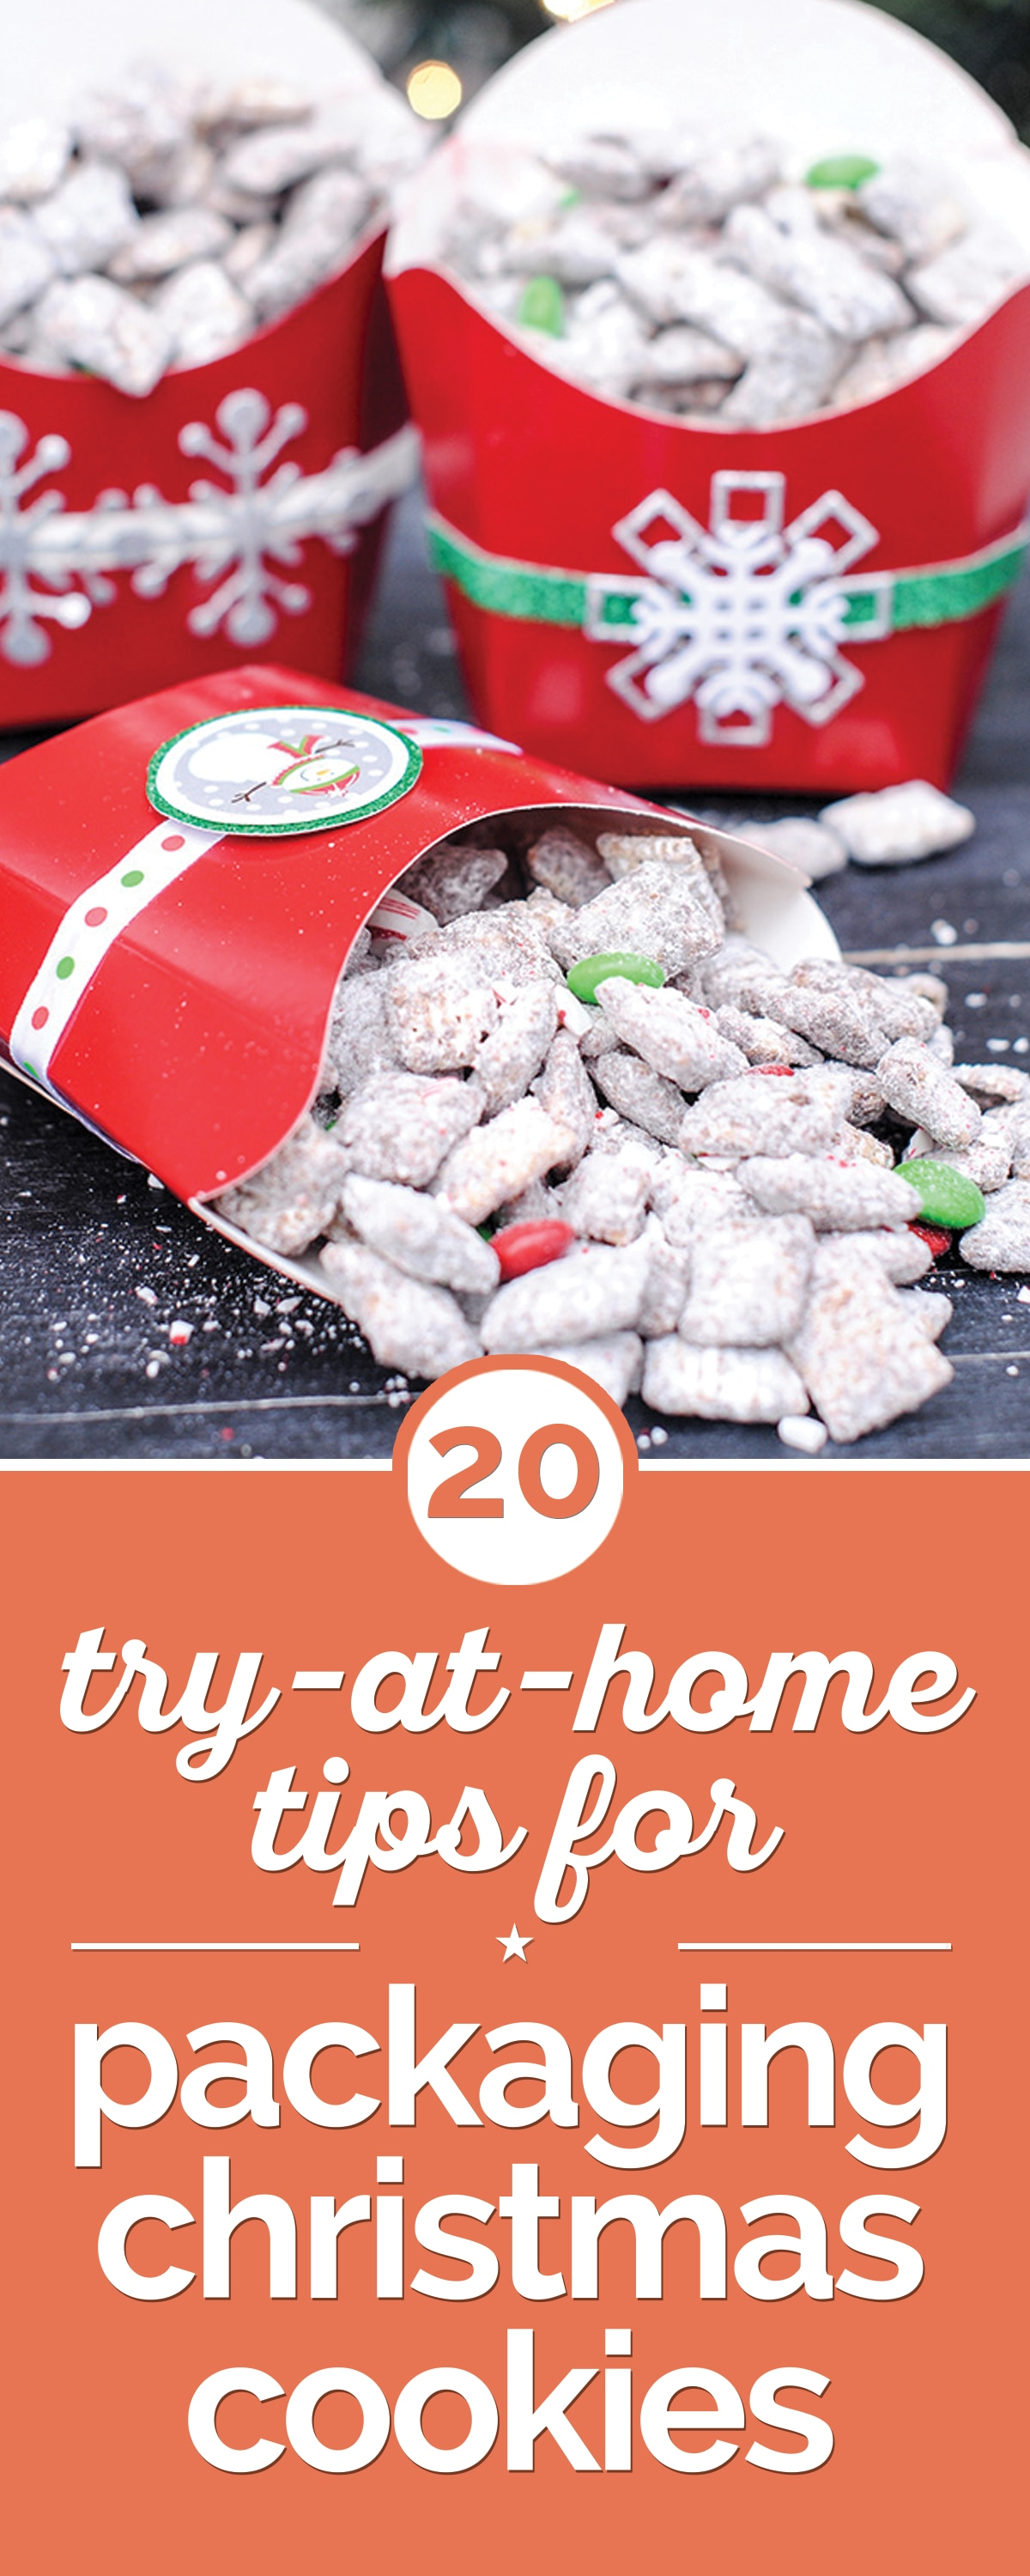 20 try at home tips for packaging christmas cookies thegoodstuff